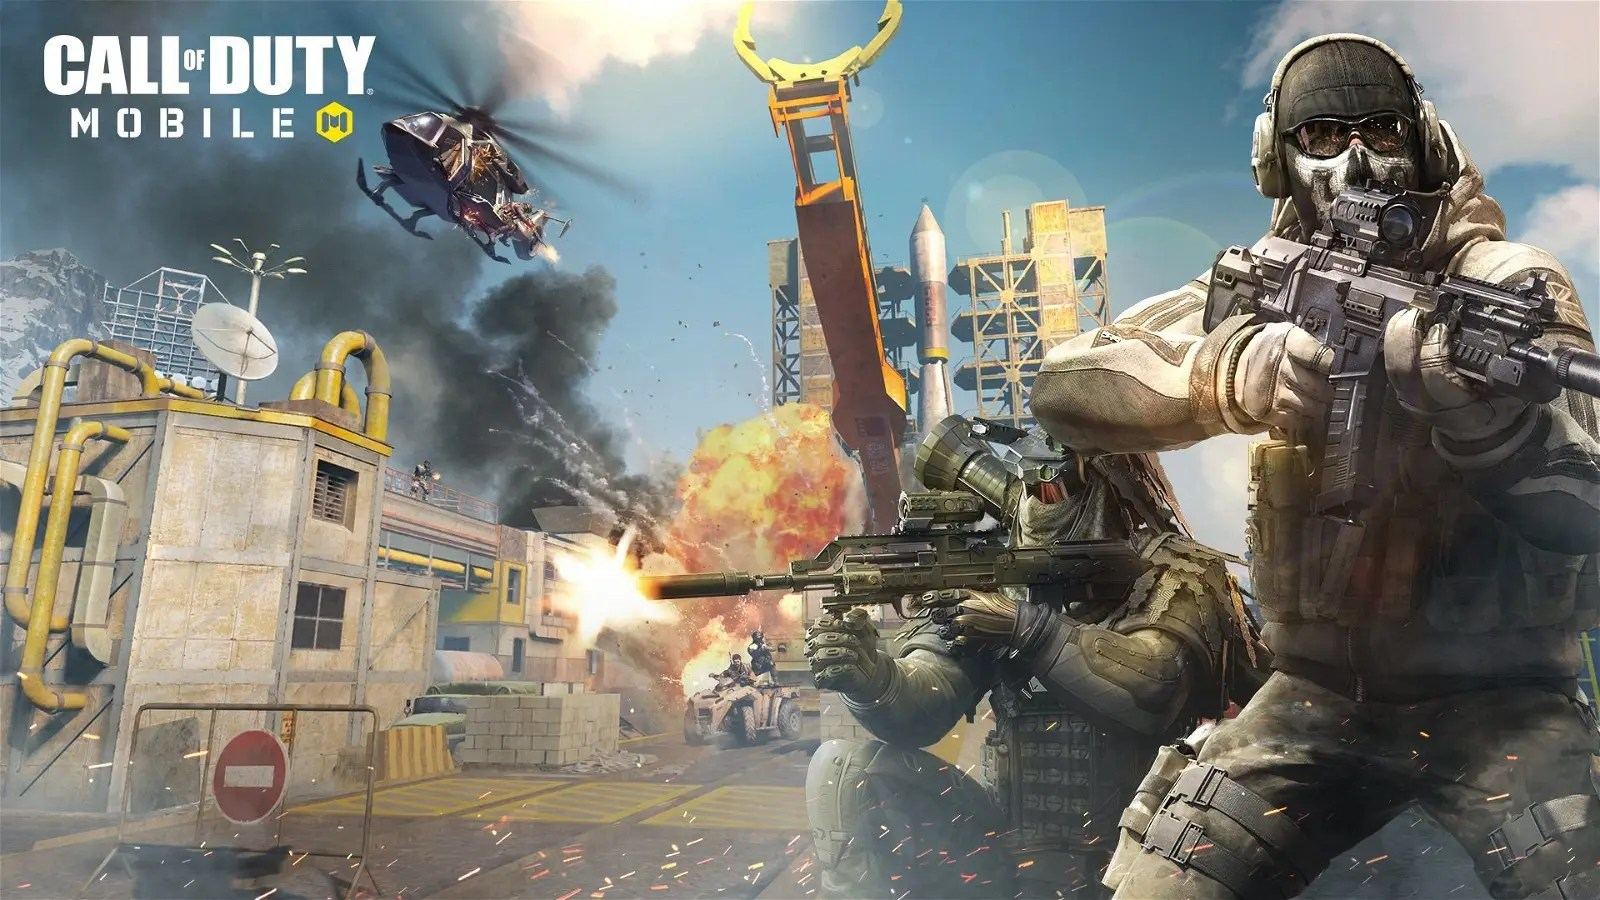 'Call of Duty' mobile version to be released October 1st